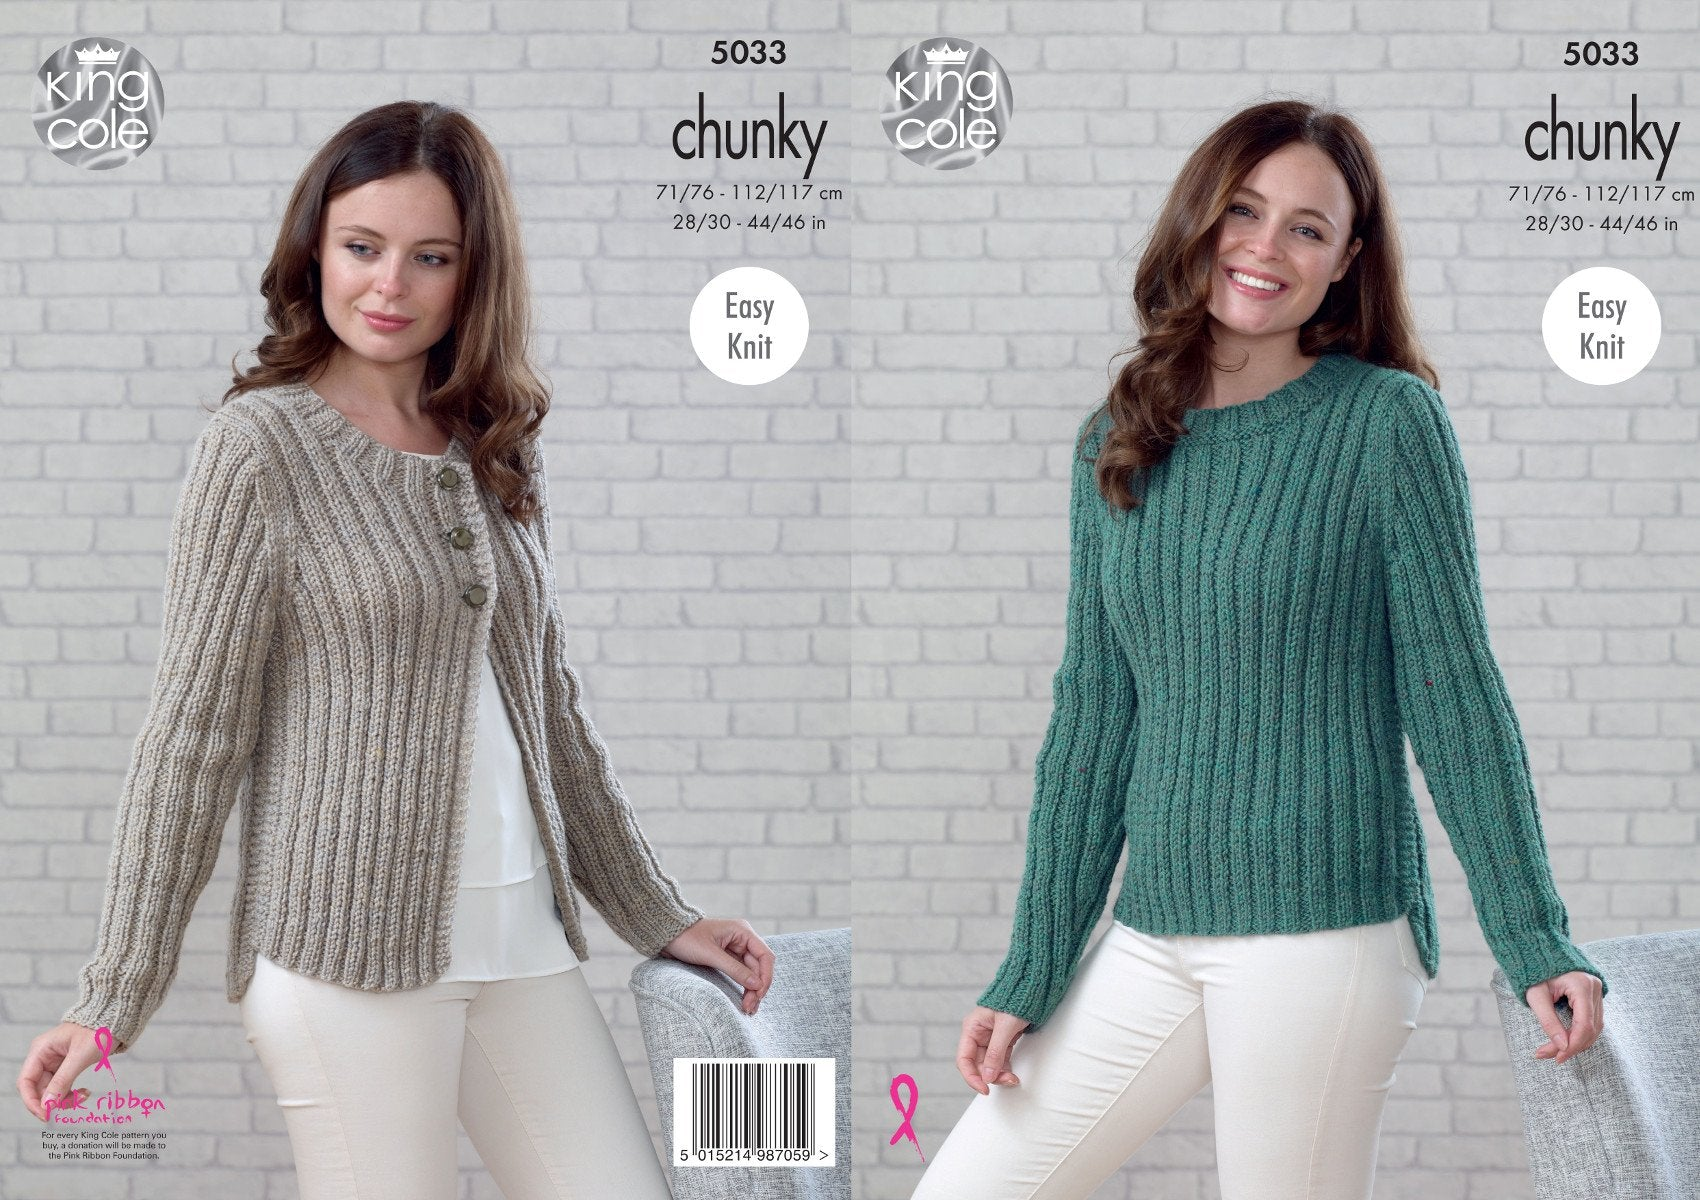 b5998908922c King Cole Ladies Chunky Knitting Pattern Womens Easy Knit Ribbed Sweater  Cardigan 5033